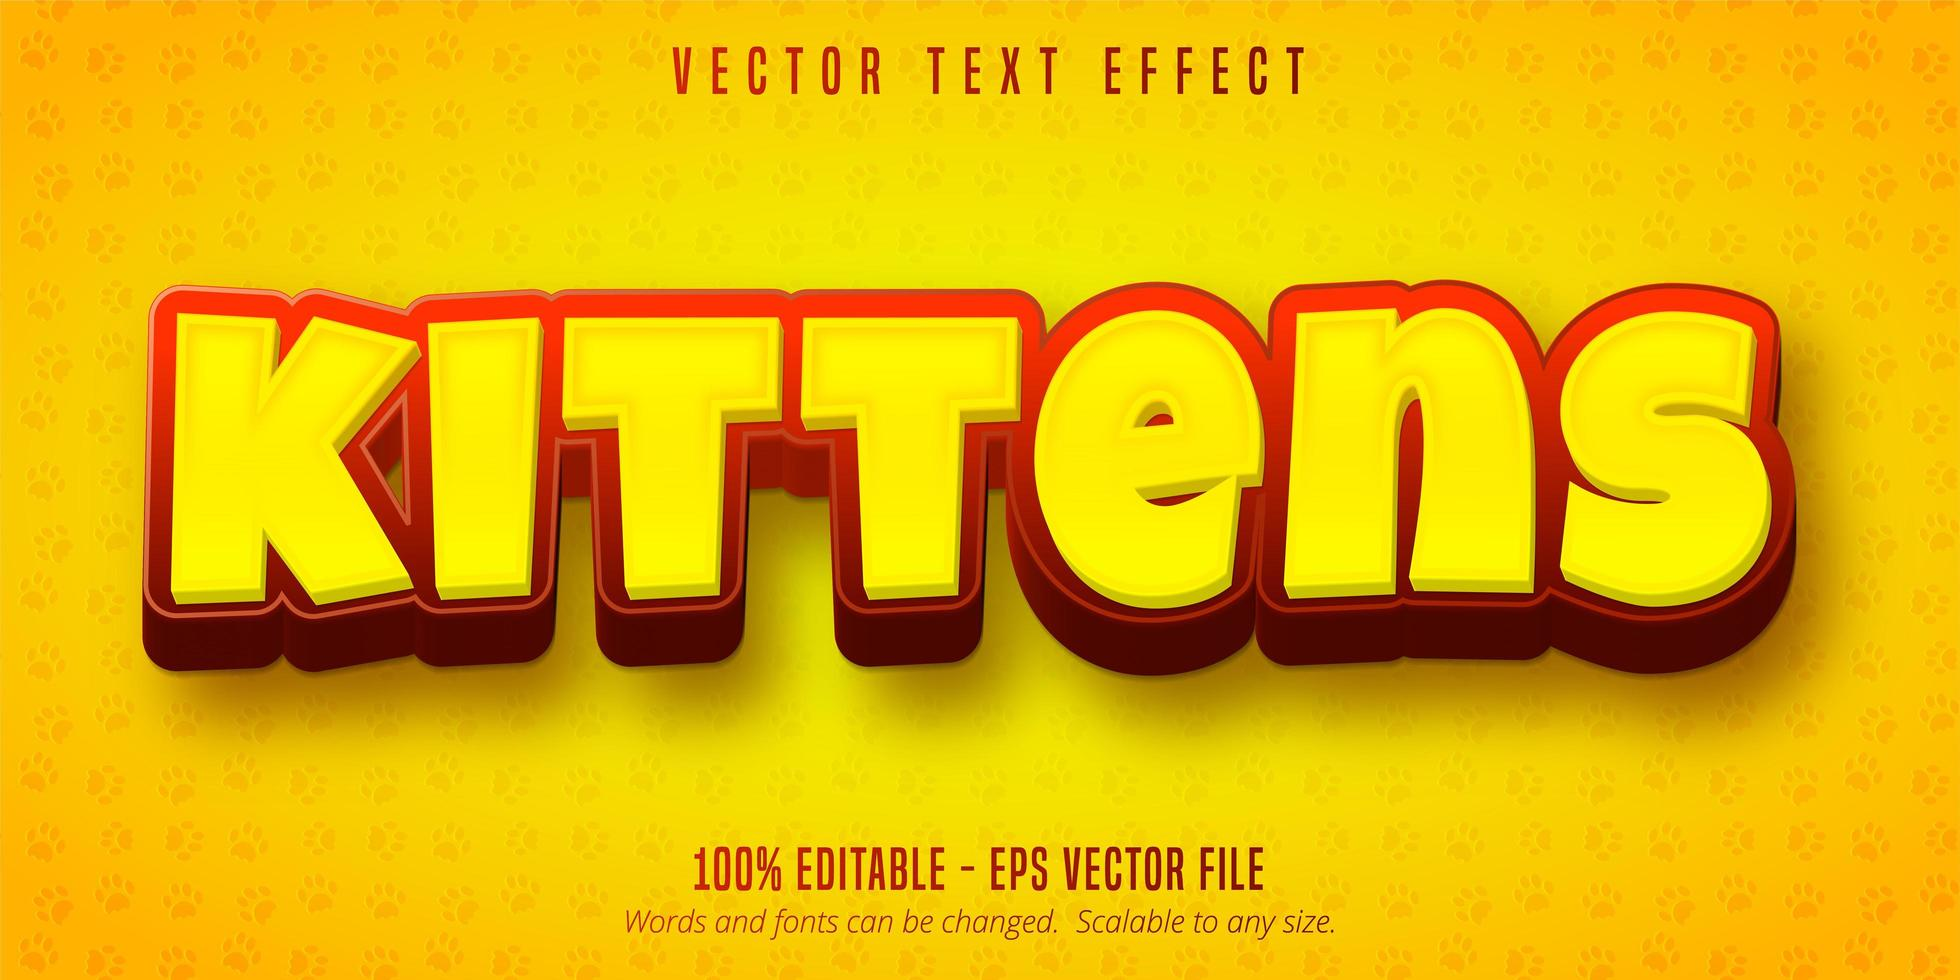 Yellow and red kittens text vector